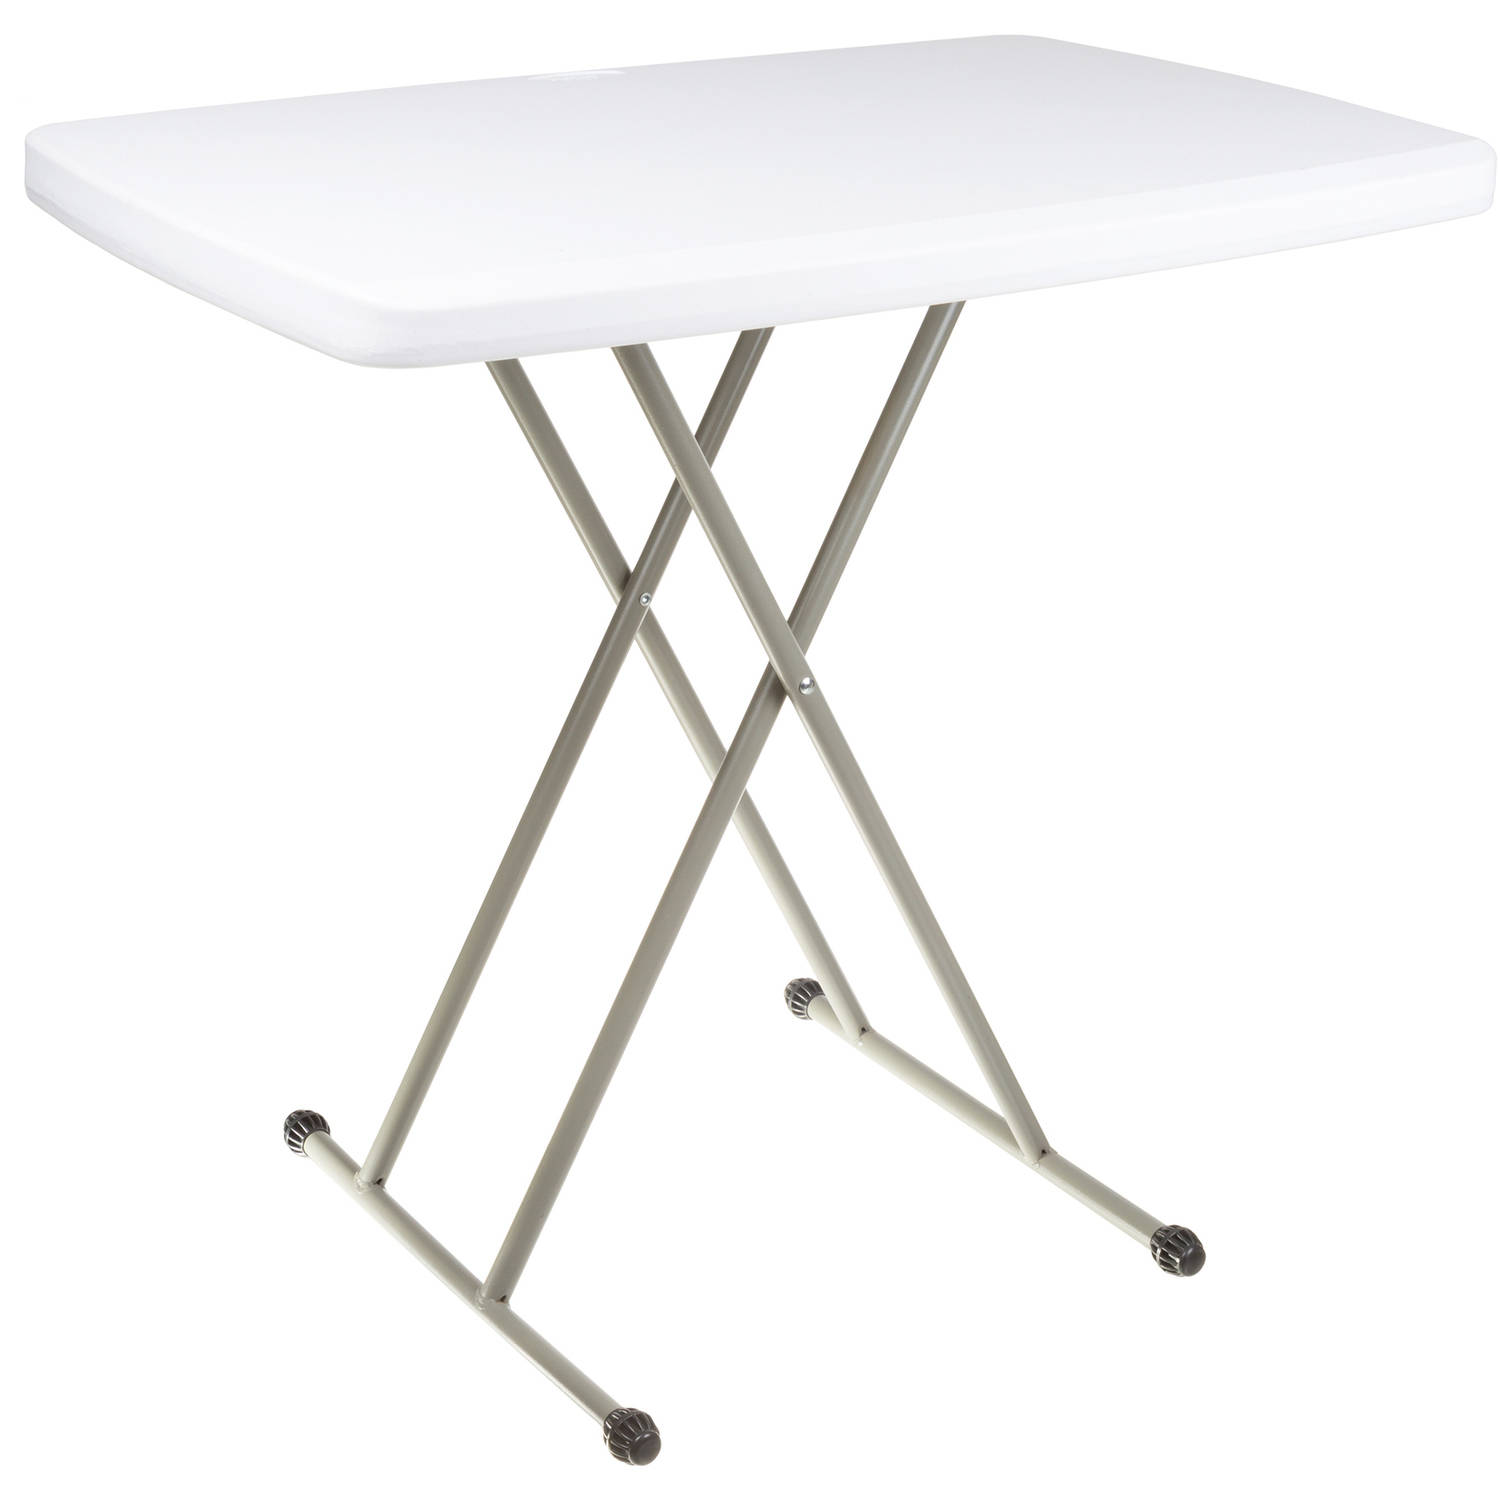 Folding Table, Foldable Table And TV Tray By Everyday Home, 30 X 20 X